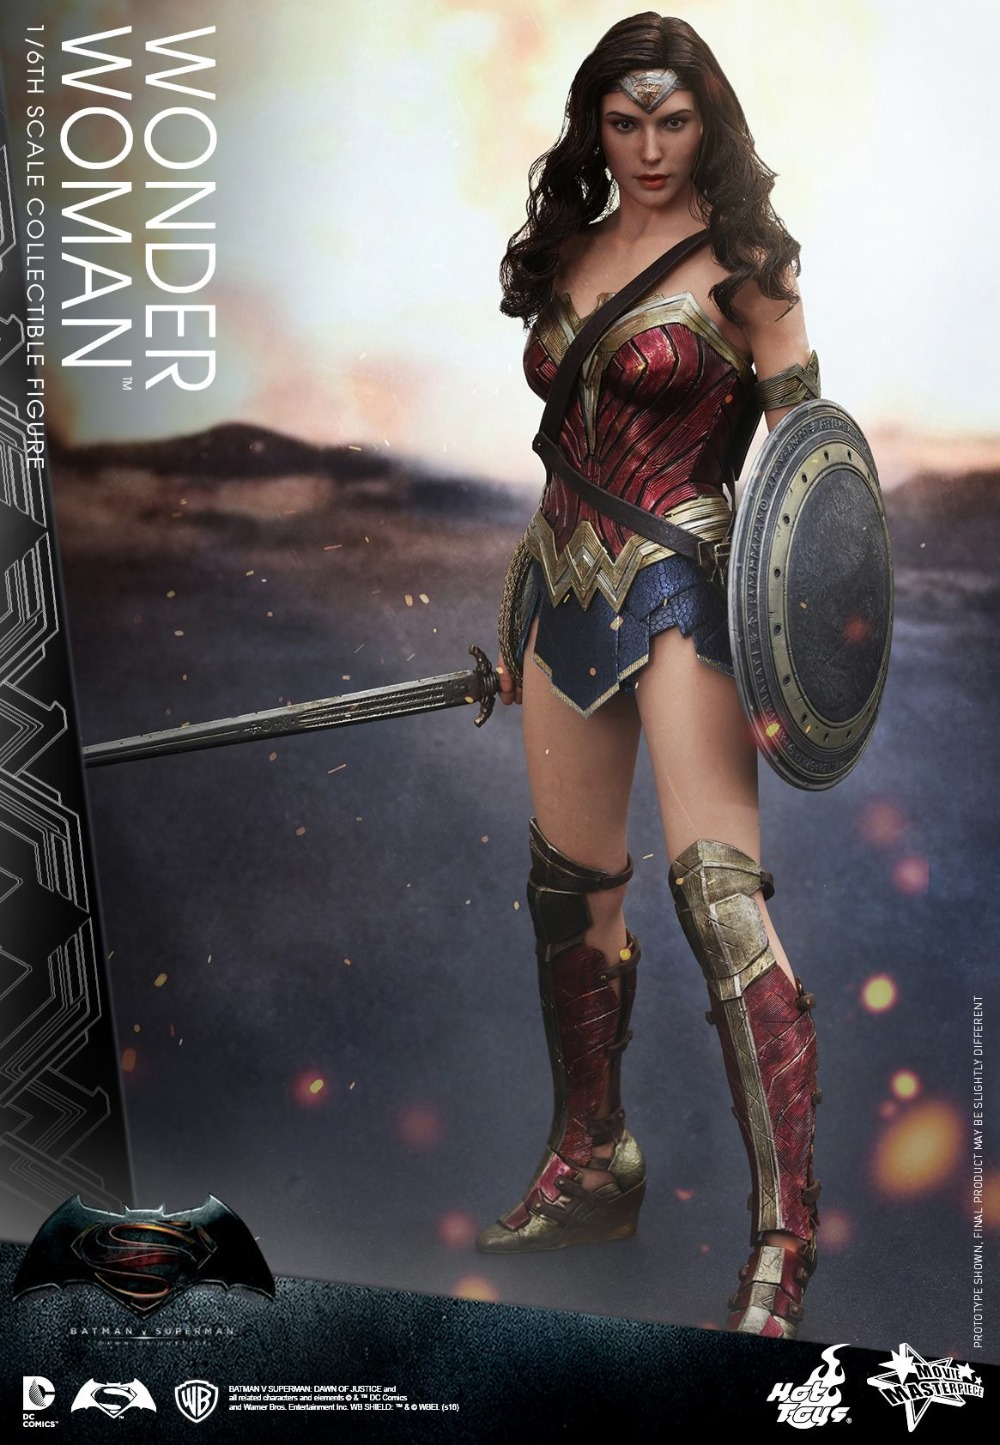 HT HOT TOYS HOTTOYS 1/6 MMS359 Batman Vs Superman Dawn of Justice Wonder Woman Gal Gadot 12 Collectible Action Figure Pre-order new hot 19 22cm justice league batman v superman dawn of justice wonder woman action figure toys collection christmas gift doll